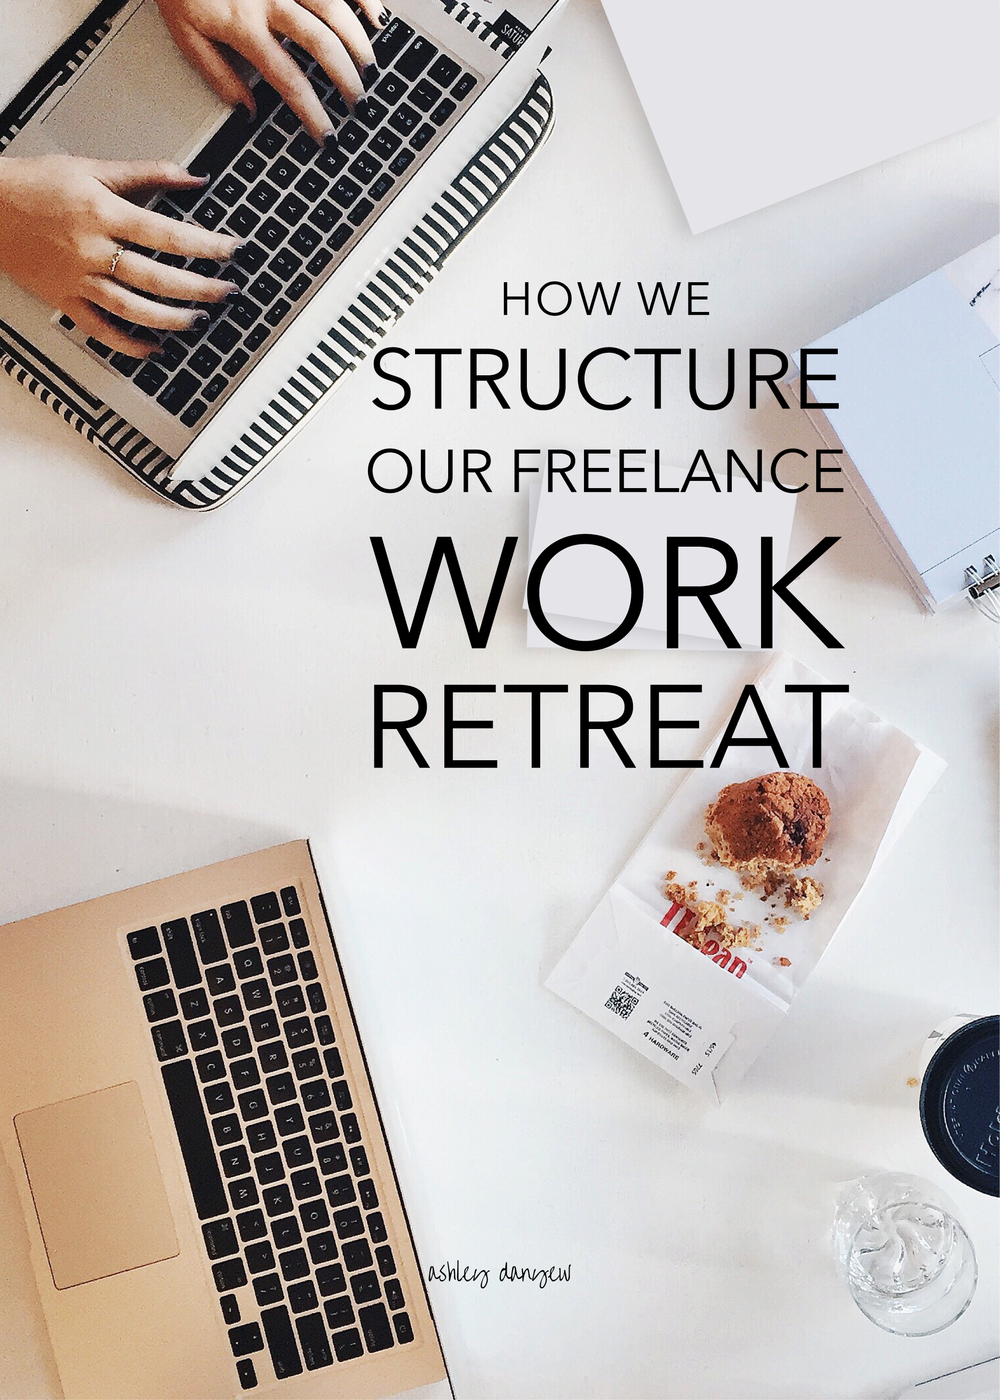 How We Structure Our Freelance Work Retreat (+ Free Workbook!)